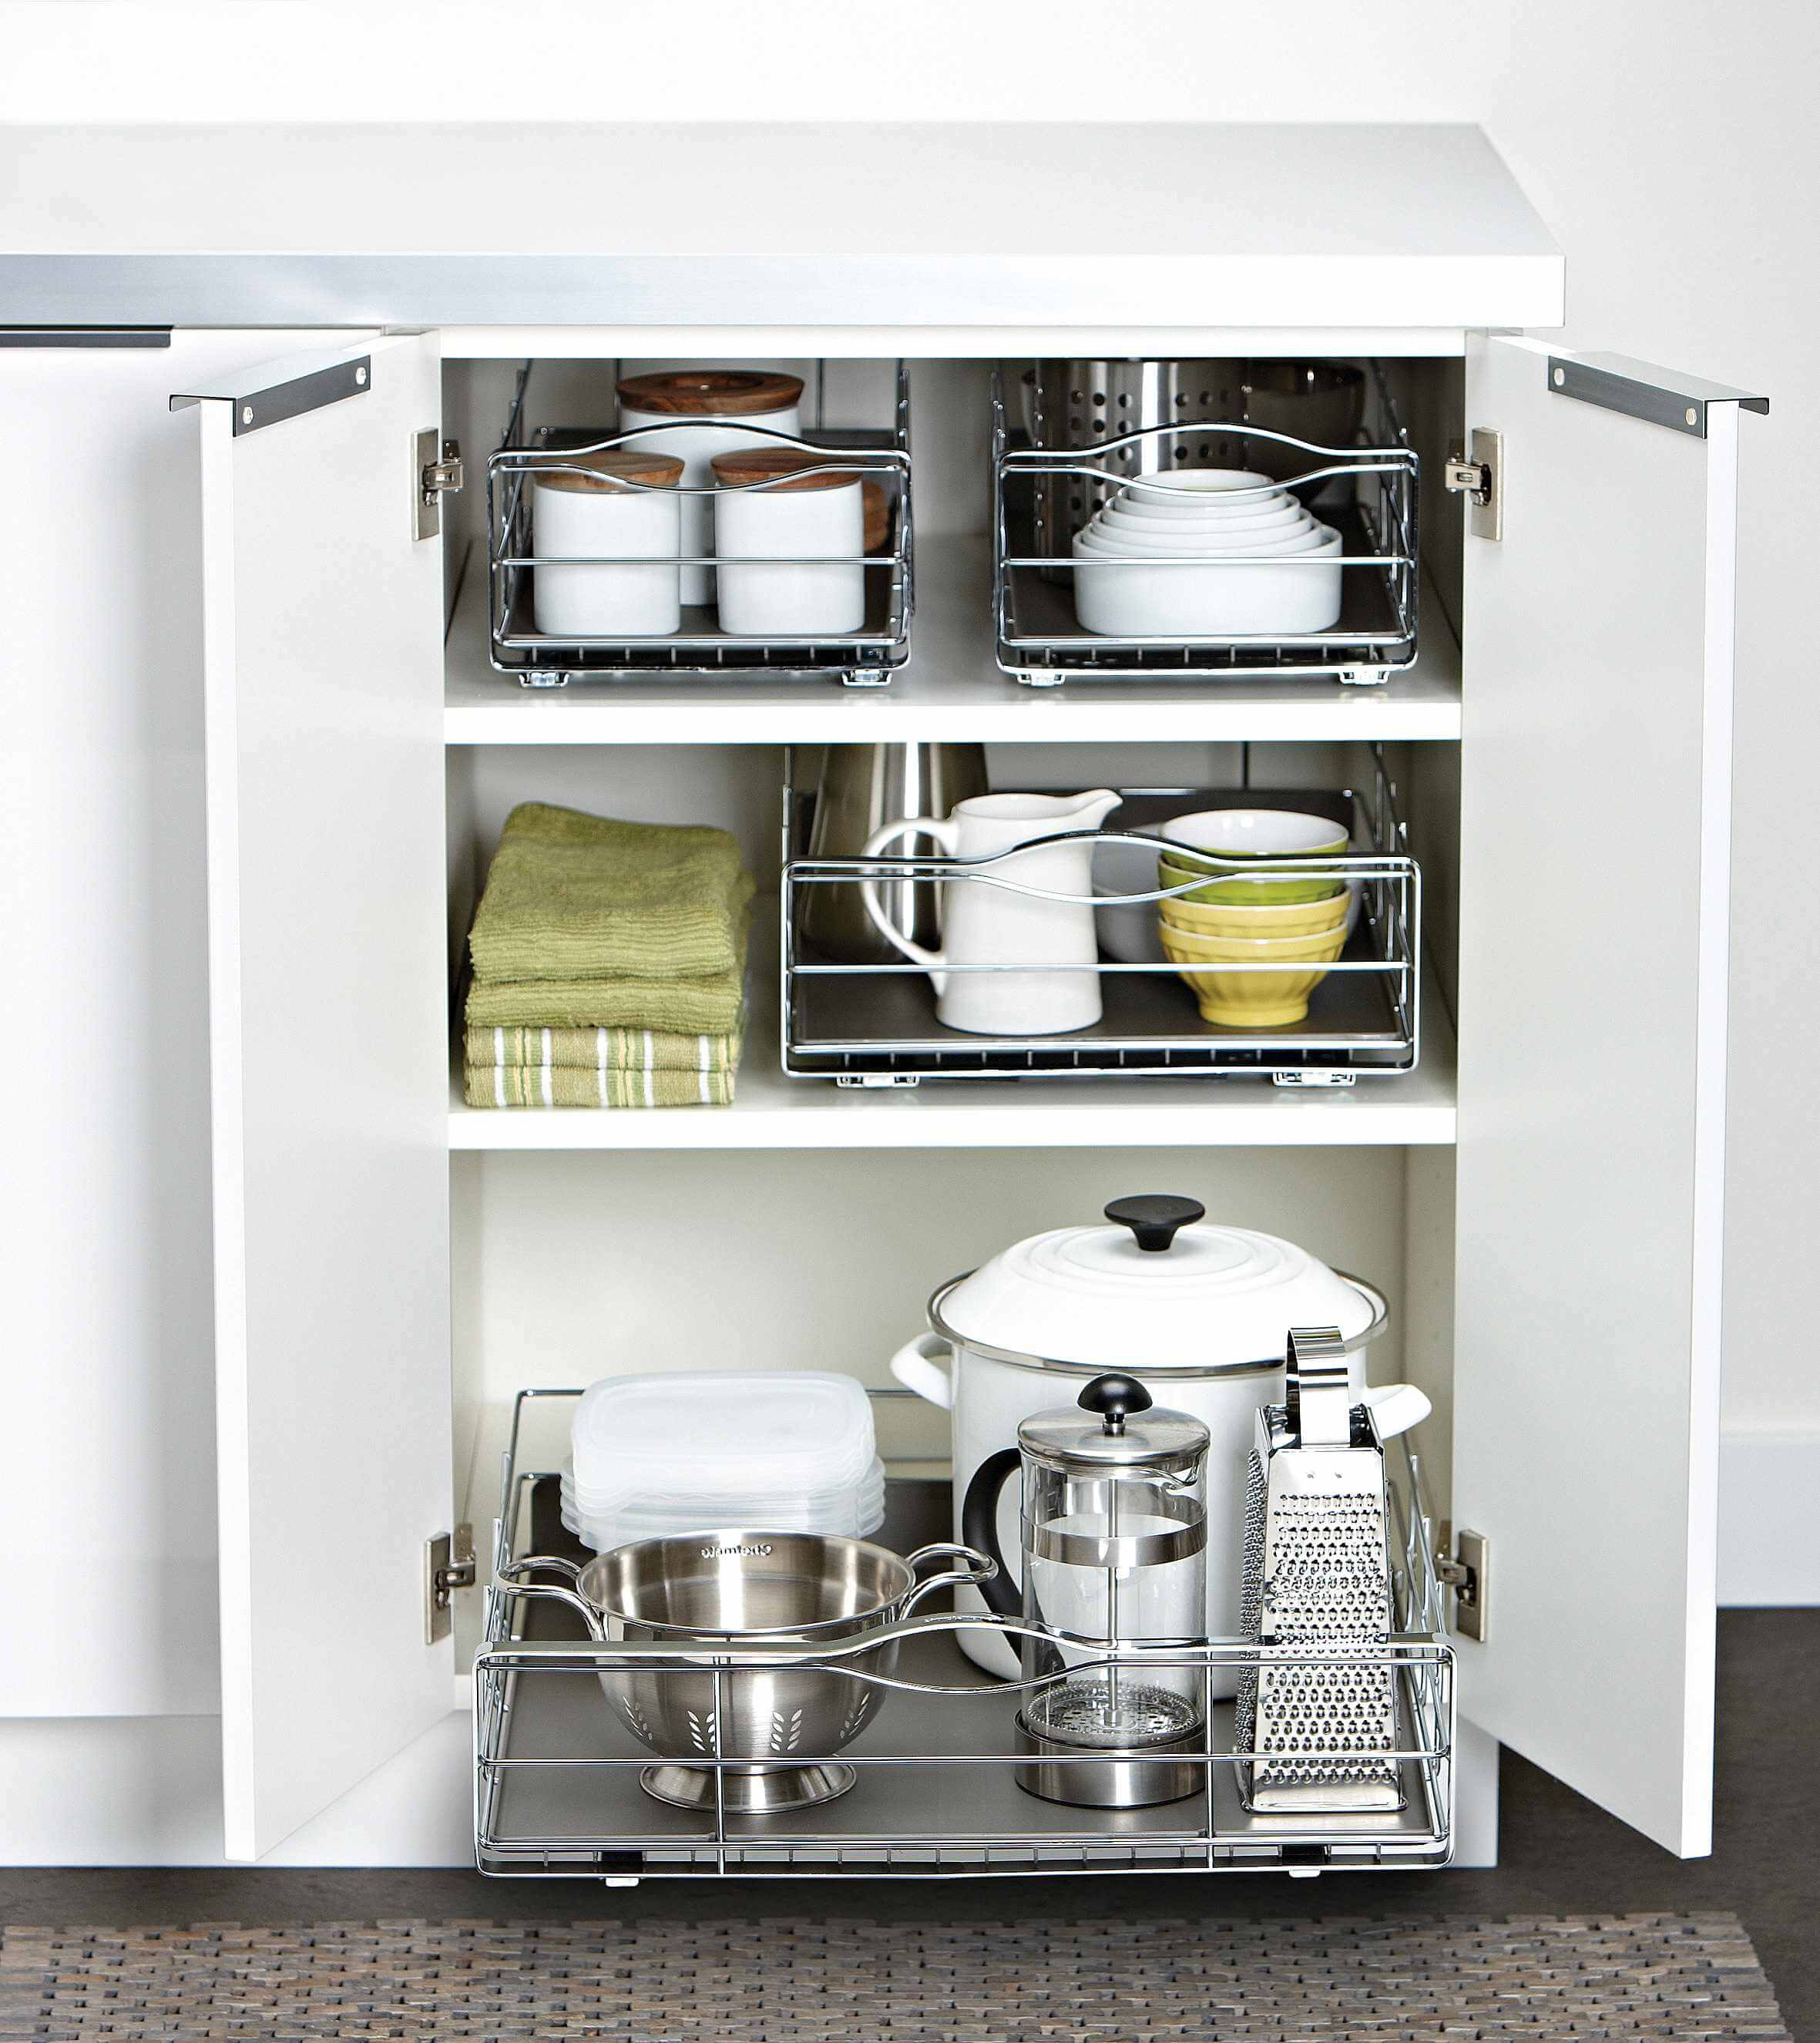 Base Cabinets with Organizers